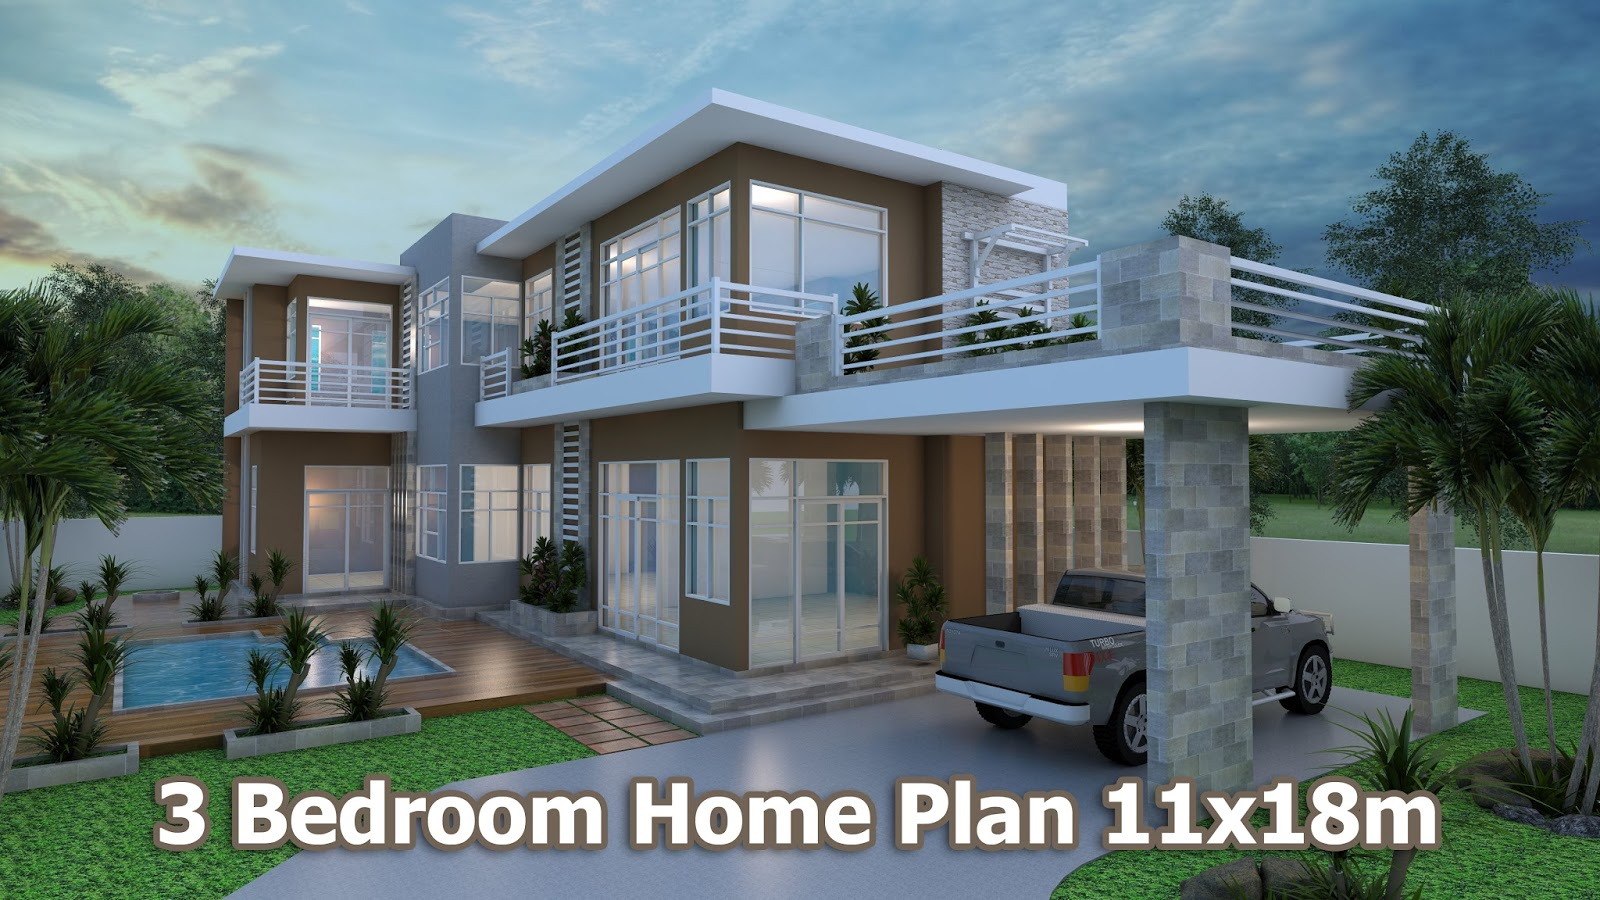 Home design 3d sketchup villa design plan 11x18m sam for Plan villa r 2